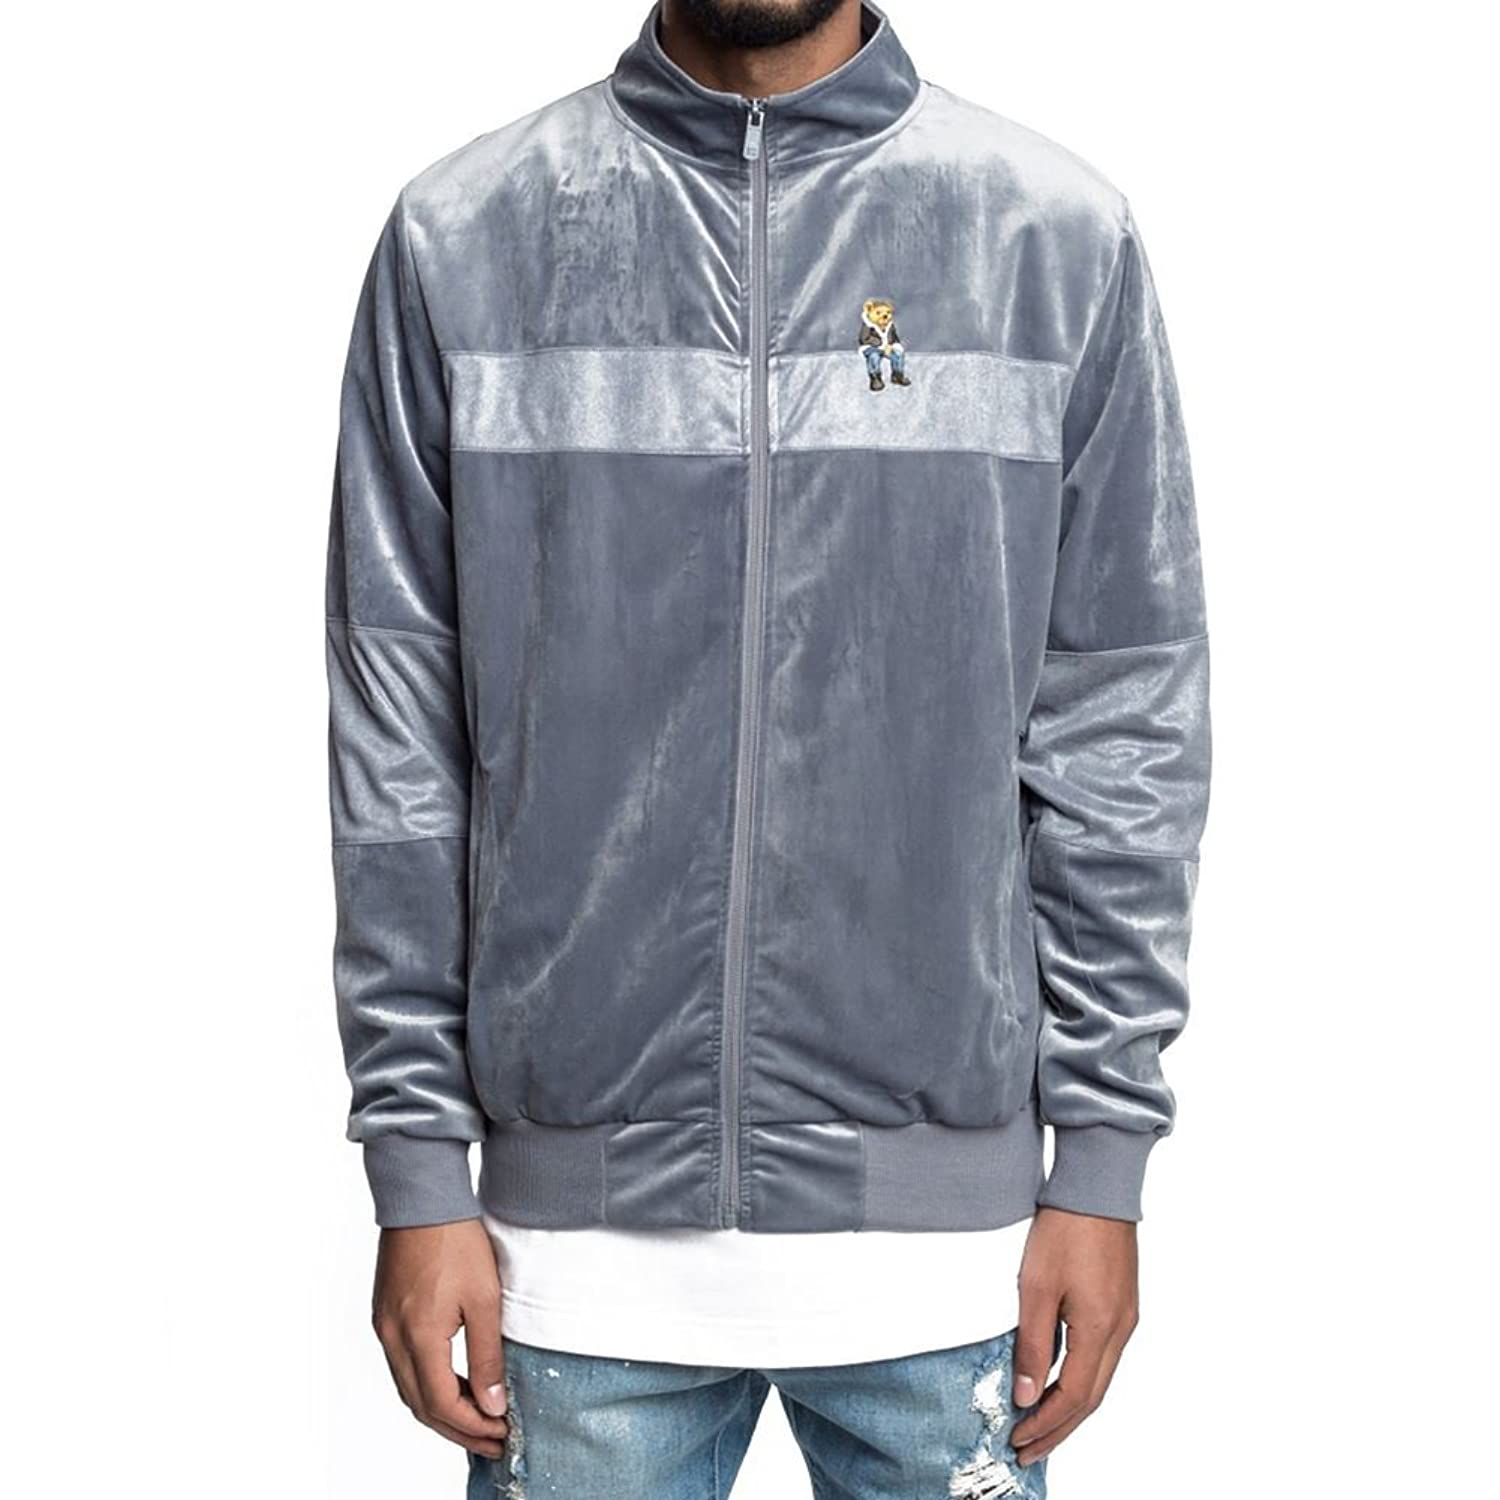 Cayler & Sons Track Top - C&S Wl Chmpgn Drms grey size: XL (X-Large)